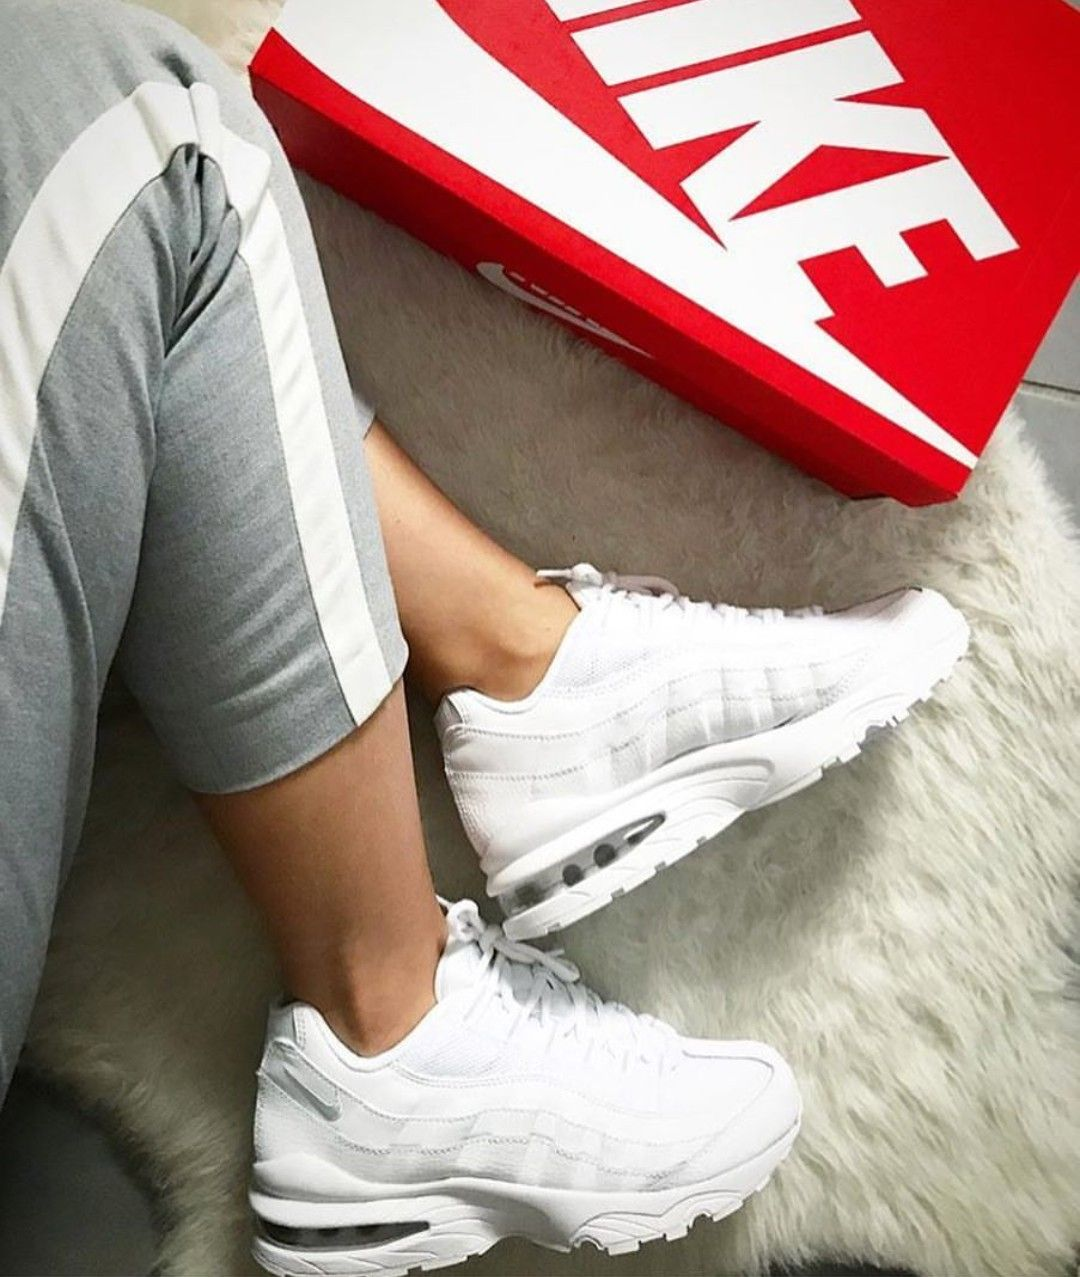 Nike Air Max 95 in white weiß    Foto  fanamss  46faae9eb41d8